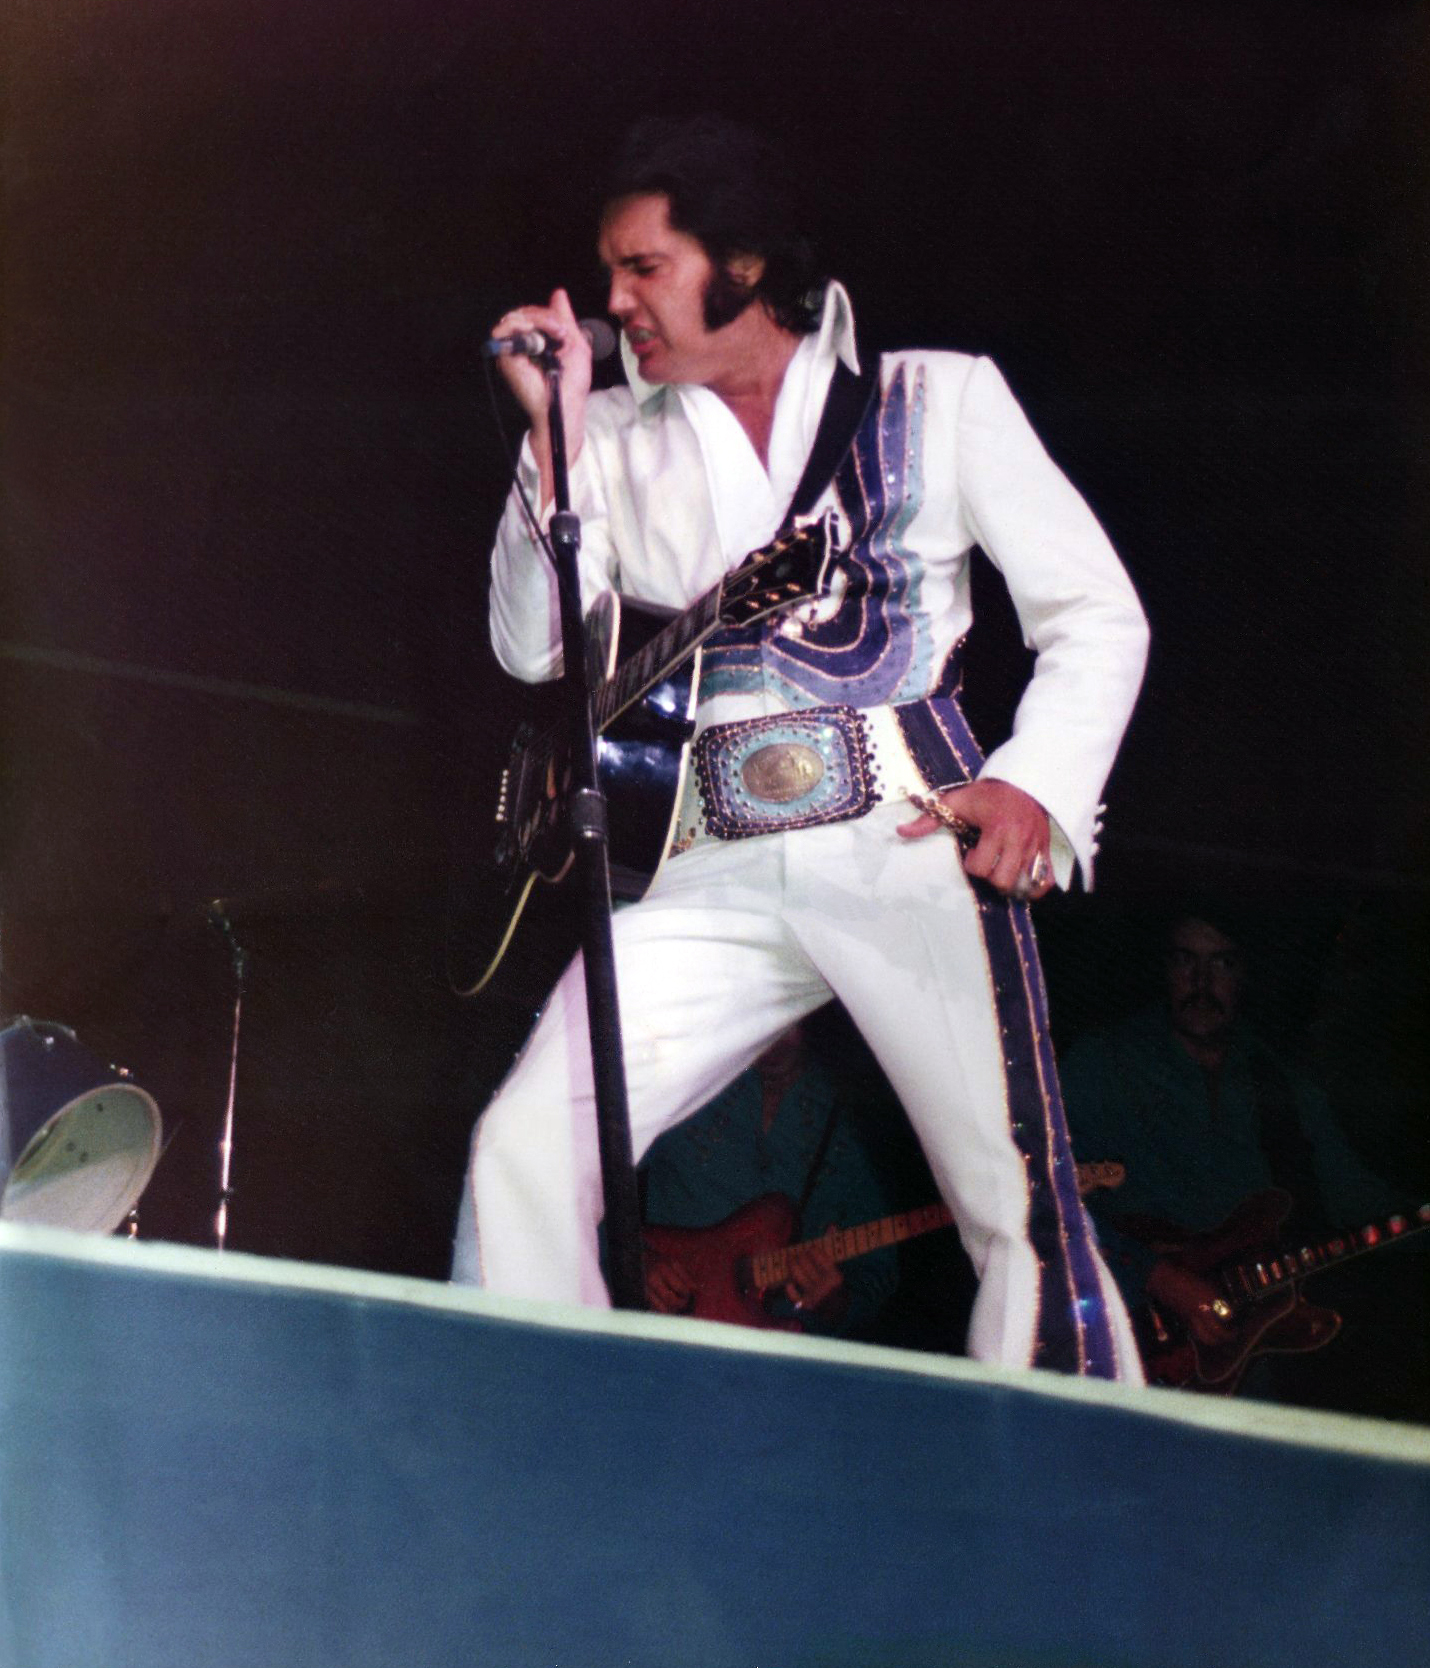 https://i1.wp.com/www.elvisconcerts.com/pictures/s74061511.jpg